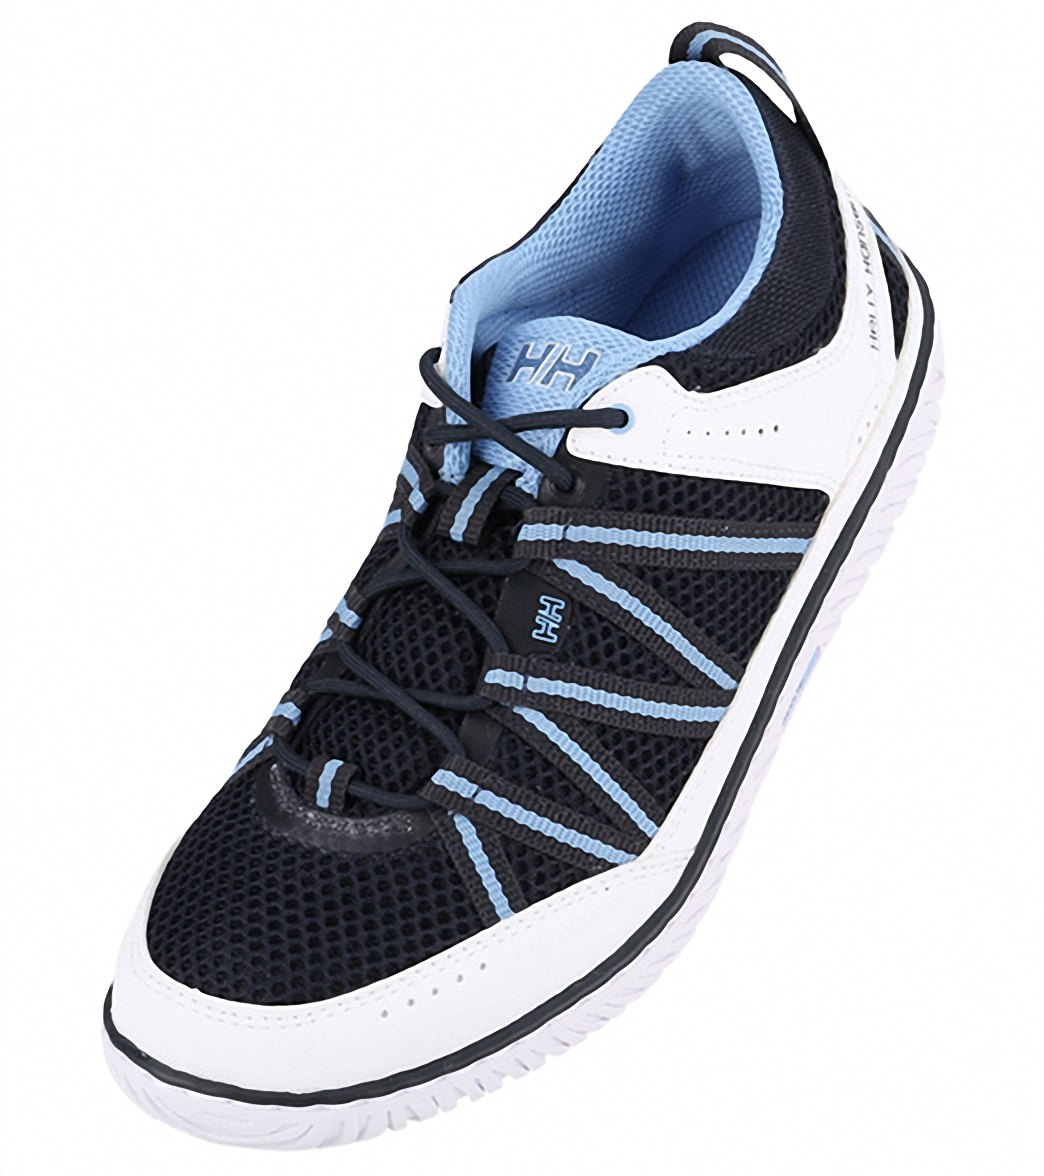 Womens W Sailpower 3 Trainers Helly Hansen For Sale Finishline Find Great Cheap Online zetgaPJs